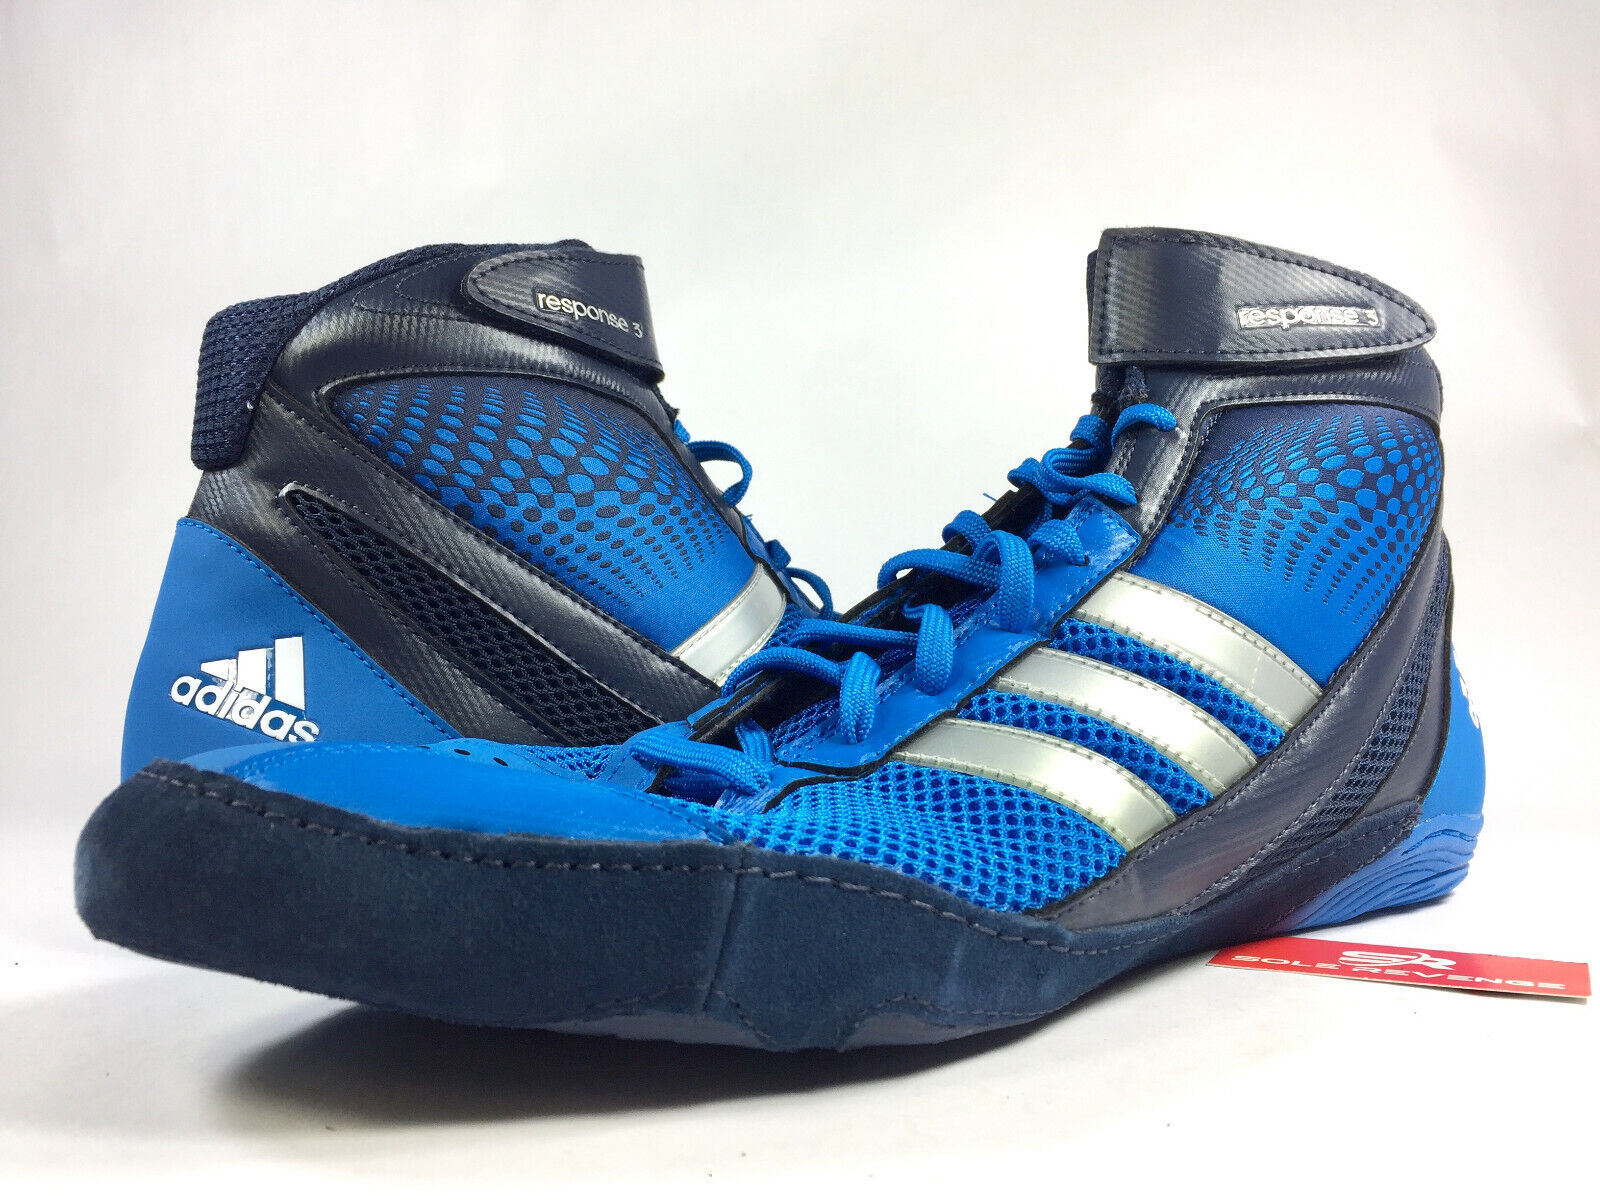 14 New ADIDAS Response 3.1 Mens Wrestling Shoes Blue Navy Sllver Gray G96626 x1